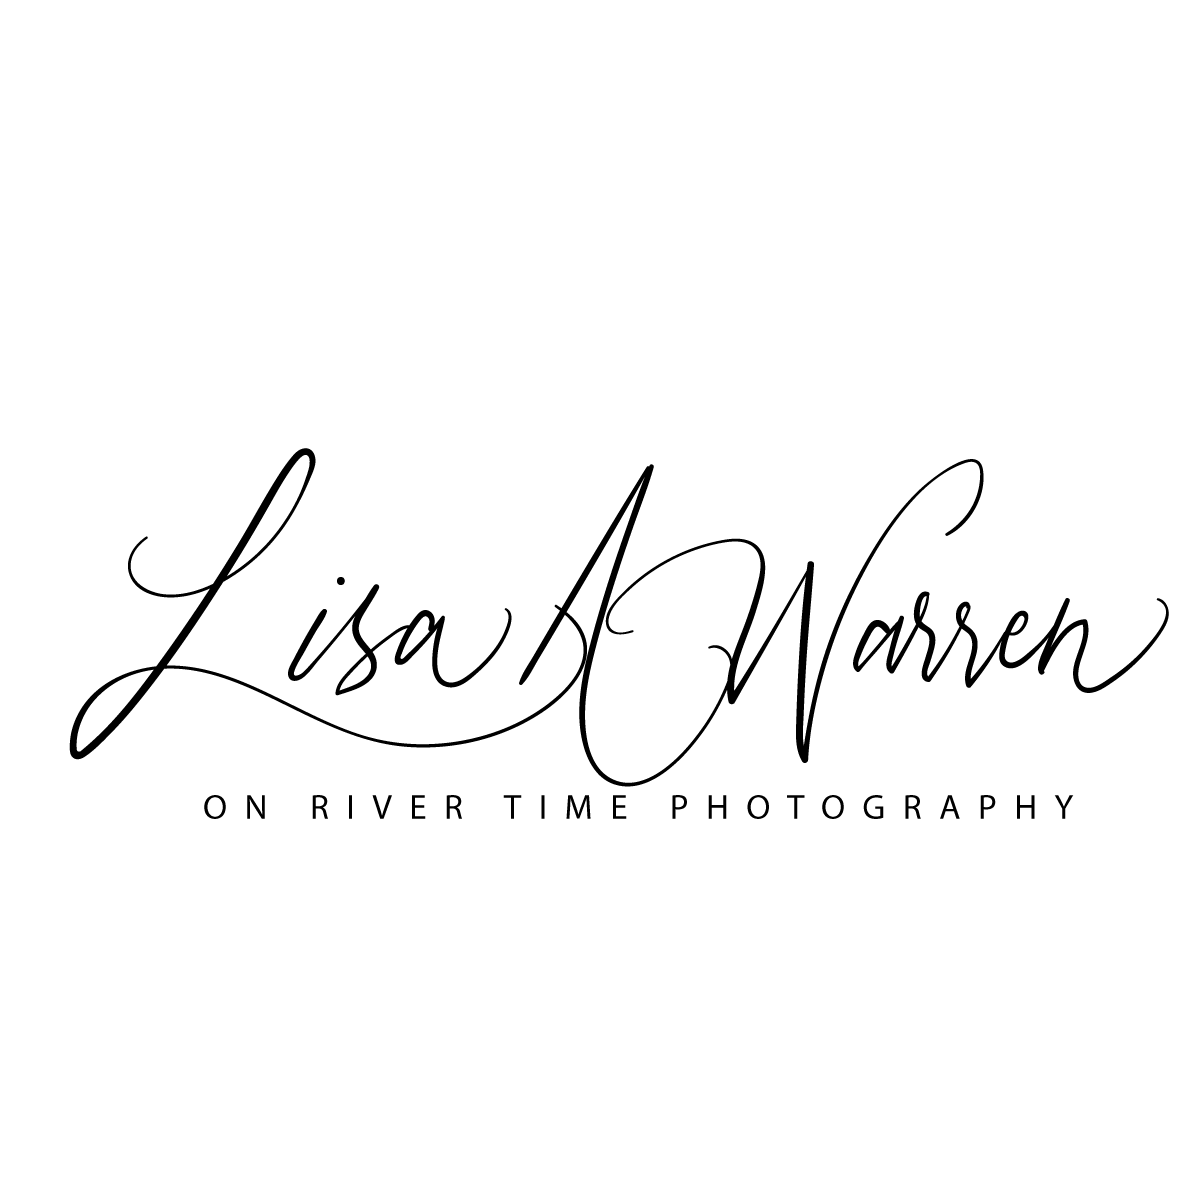 On River Time Photography